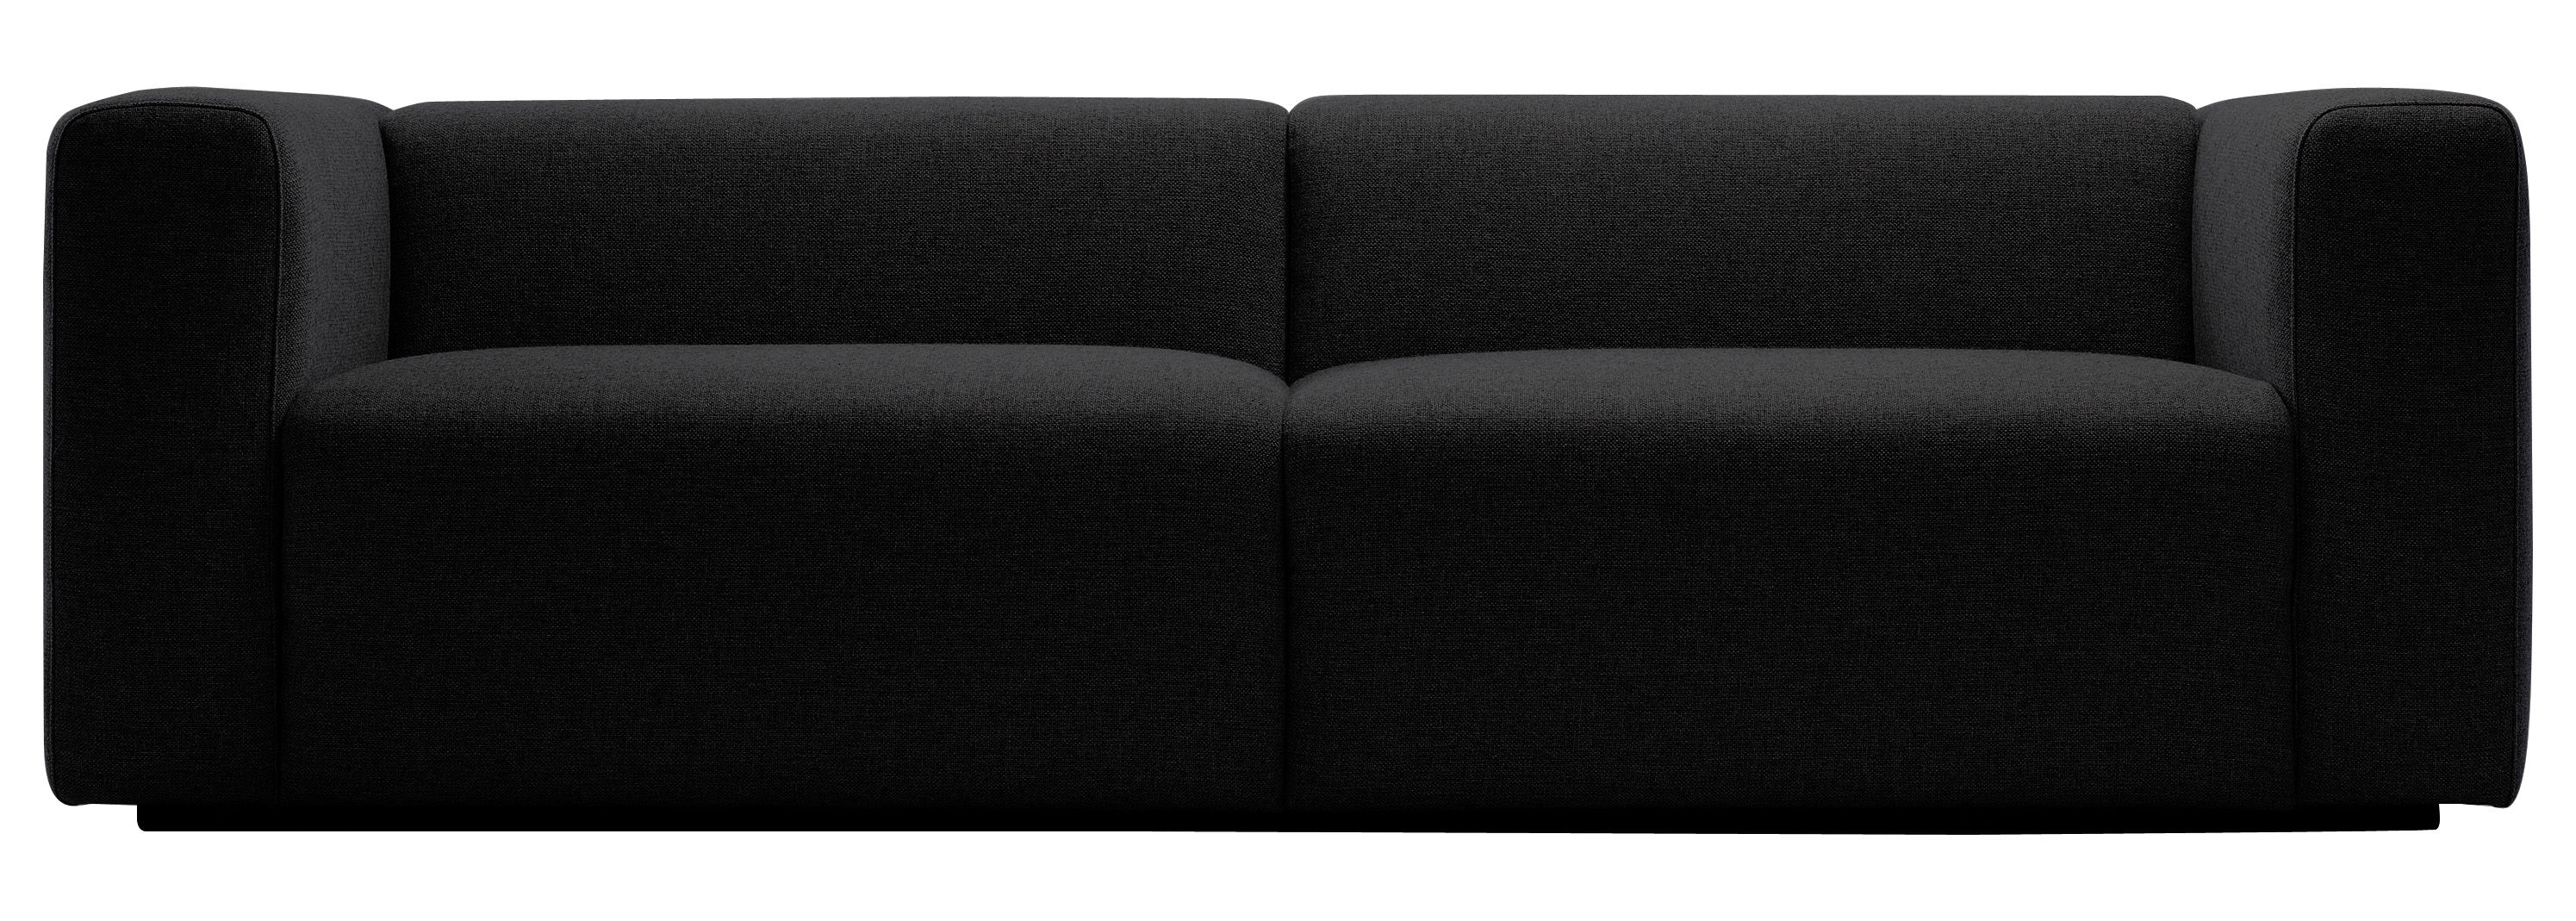 Furniture - Sofas - Mags Straight sofa - 2 ½ seats / L 228 cm by Hay - Dark grey - Fabric